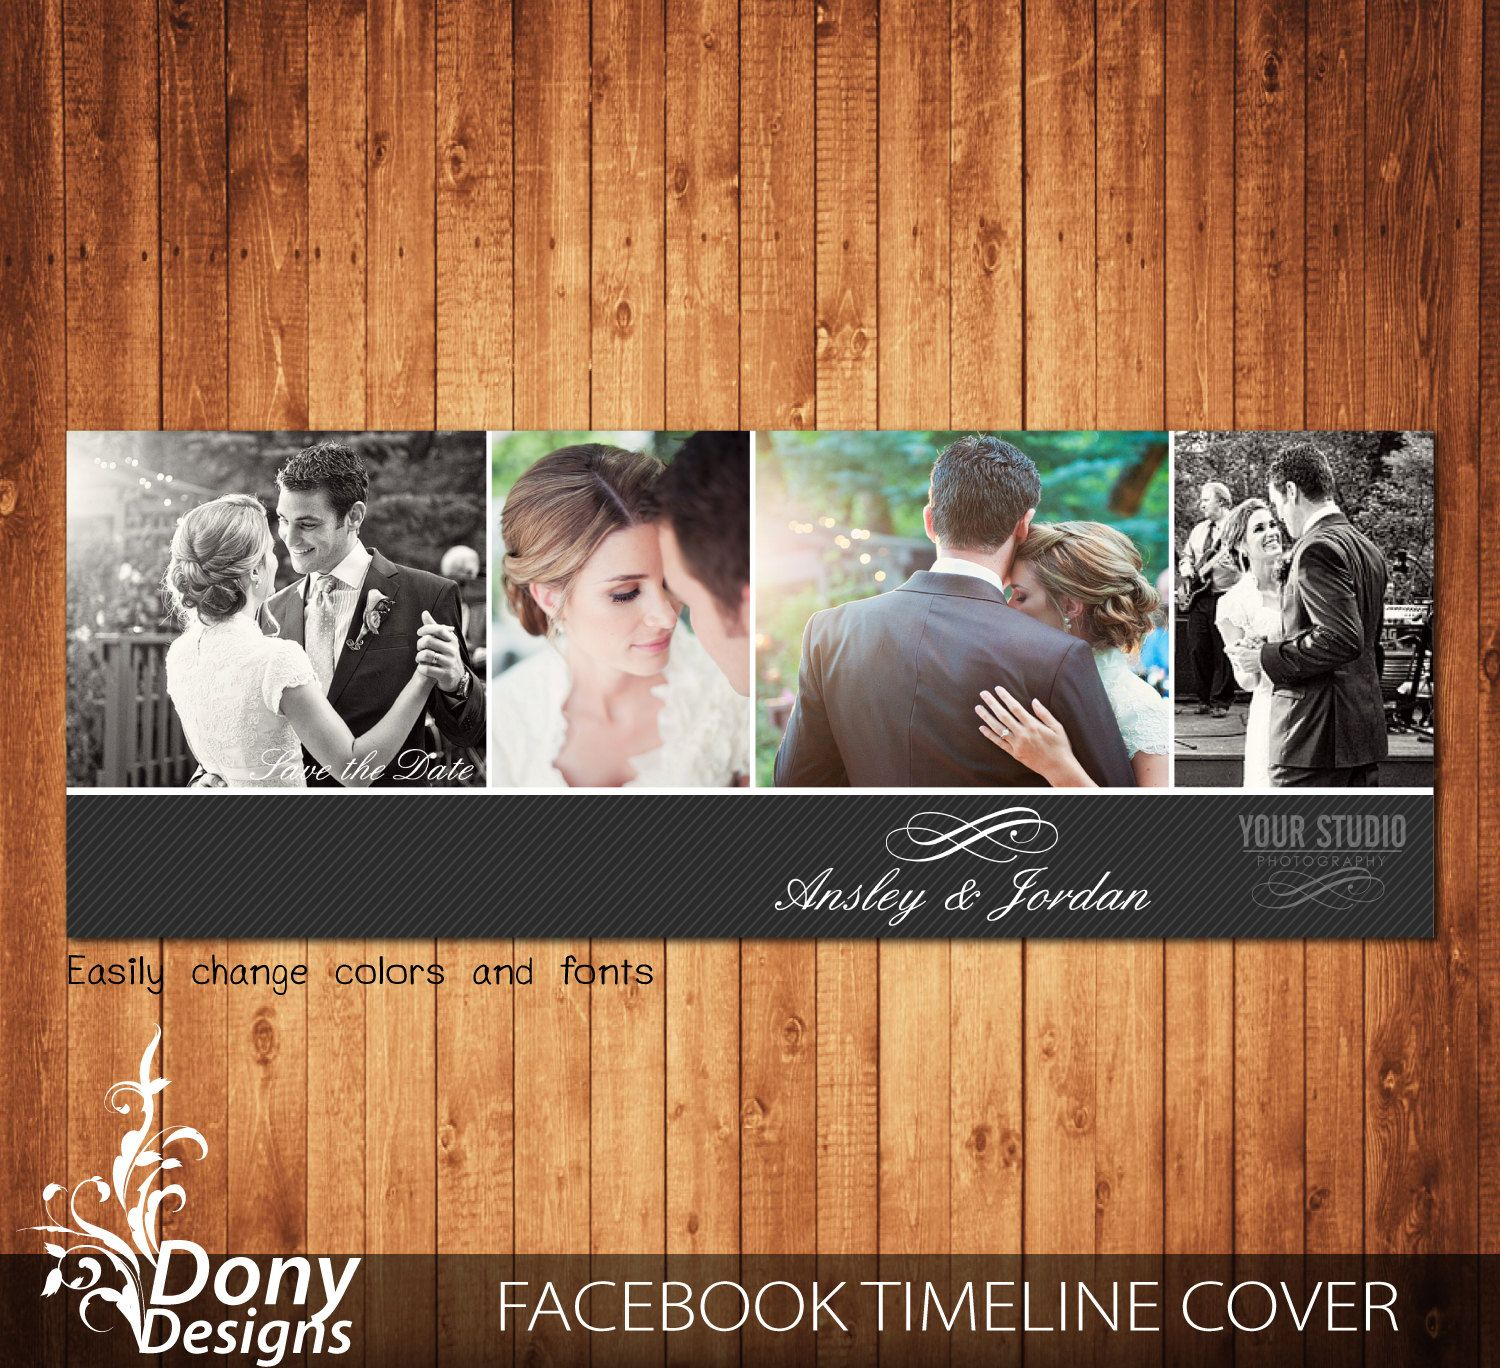 Wedding Facebook timeline cover template photo collage - Photoshop Template Instant Download BUY 1 GET 1 FREE: fc345 by DonyDesigns on Etsy